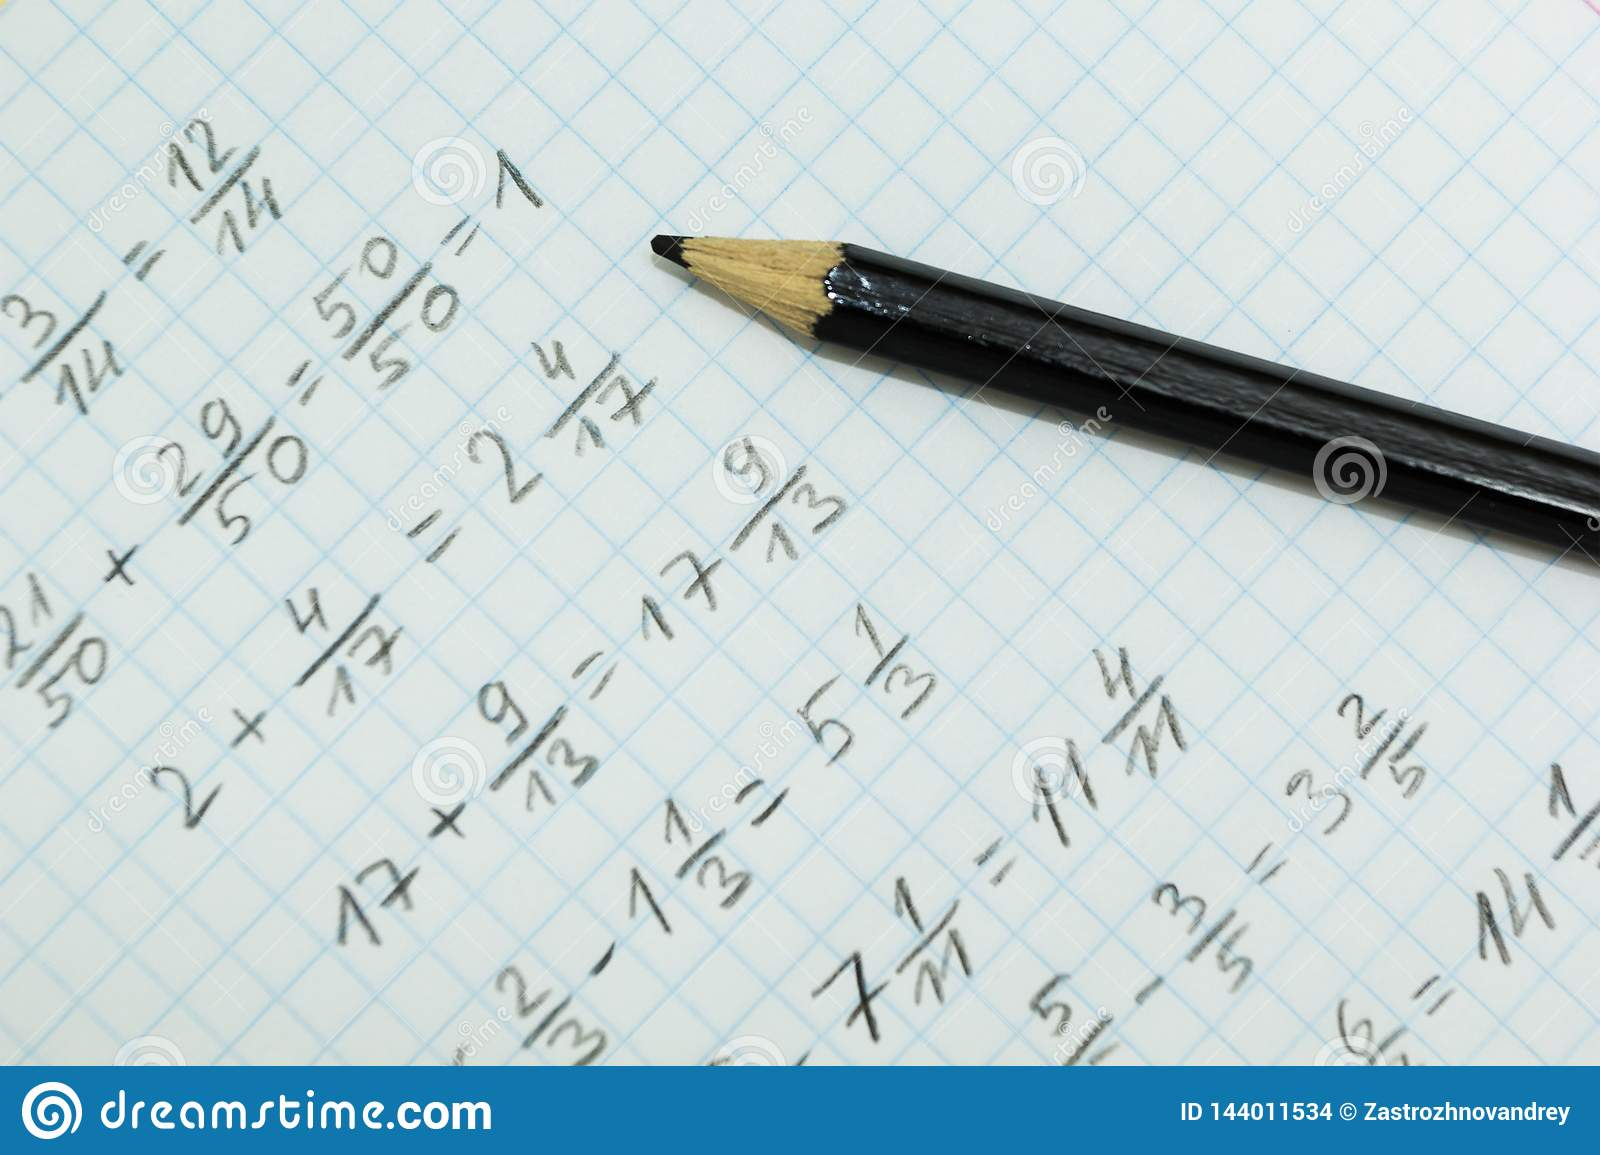 Math problems on graph paper with black pencil